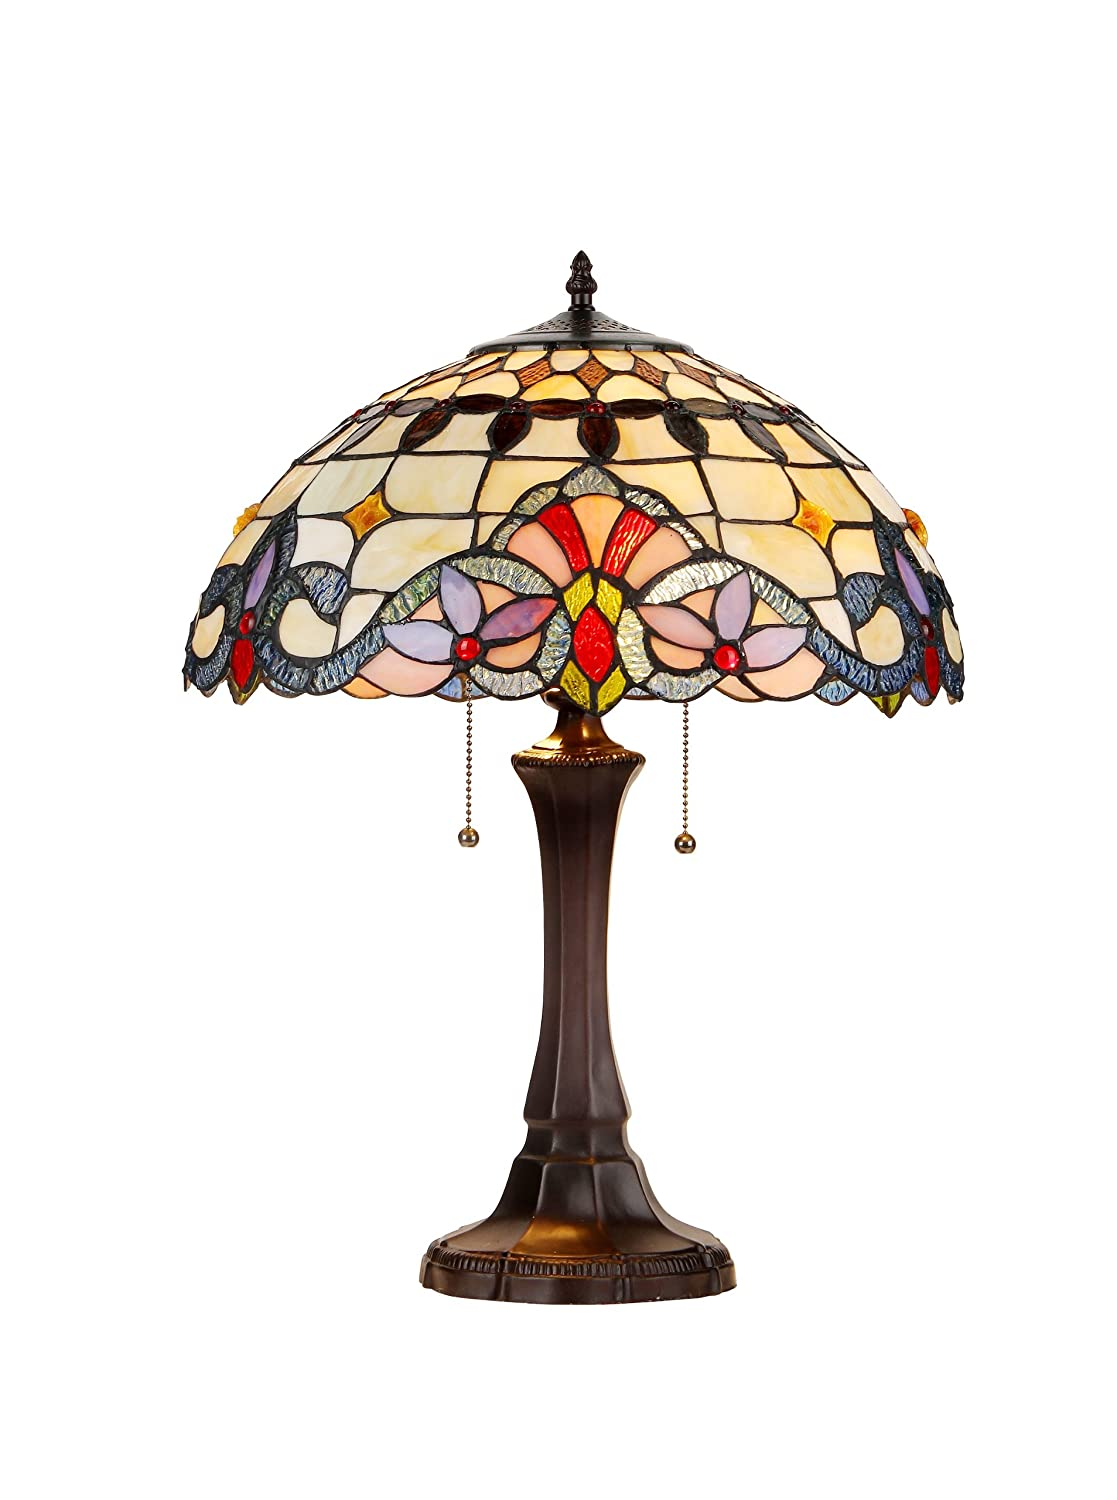 Chloe Lighting CH33313VI16-TL2  Cooper  Tiffany-Style Victorian 2 Light Table L& 16  Shade - Real Glass Stained Glass L&s - Amazon.com  sc 1 st  Amazon.com & Chloe Lighting CH33313VI16-TL2